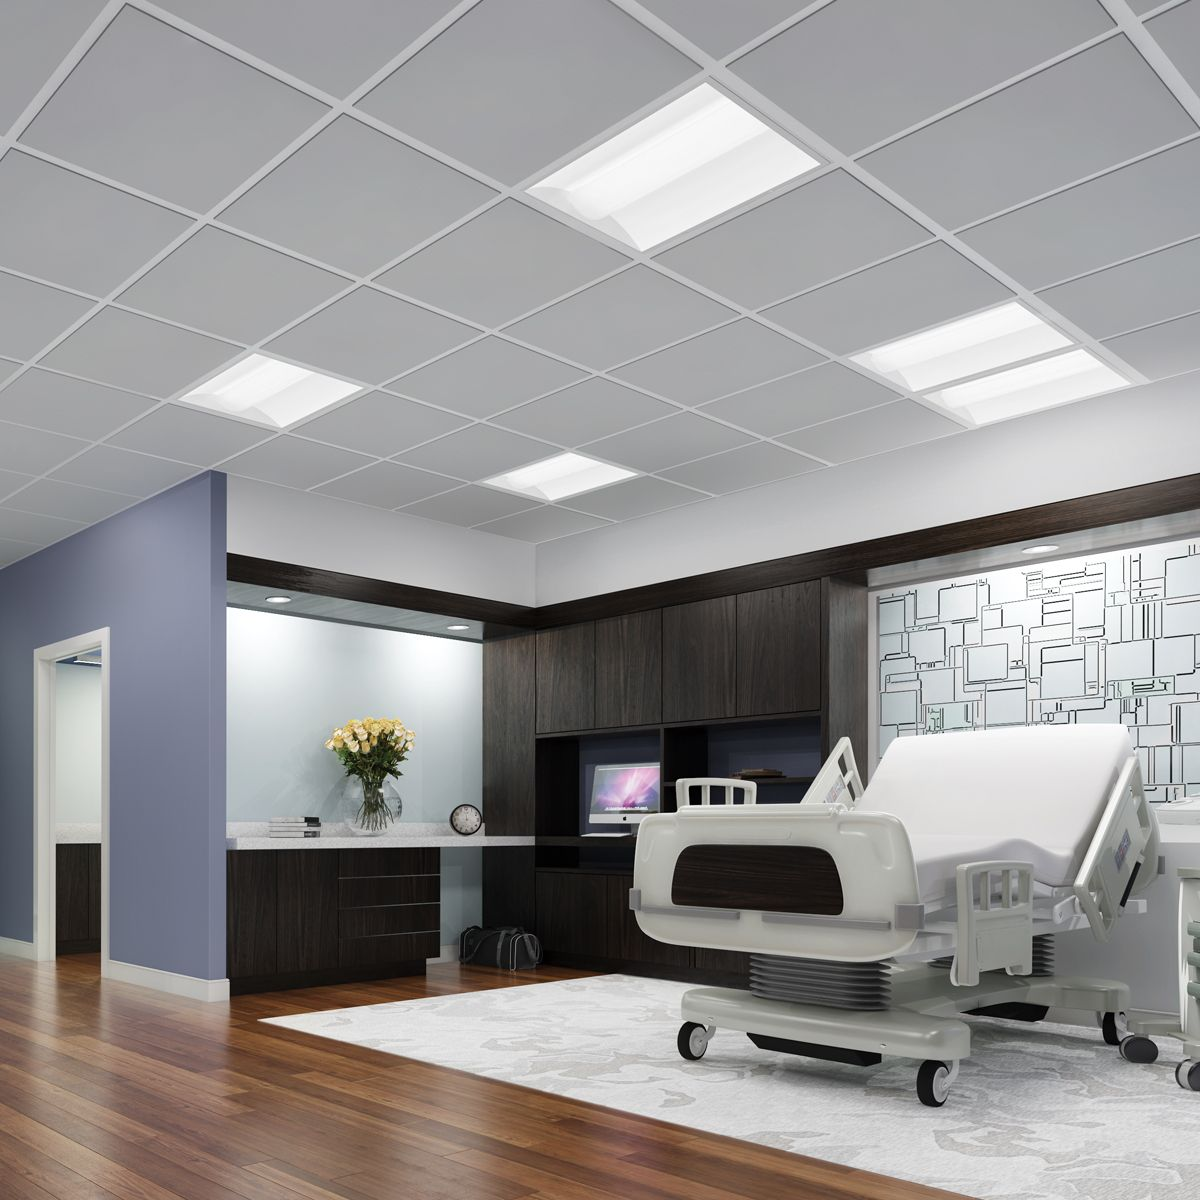 Affordable LED lighting for healthcare  Metalux Cruze  Installation  flexibility as well Affordable LED lighting for healthcare  Metalux Cruze  . Cooper Lighting Cruze. Home Design Ideas